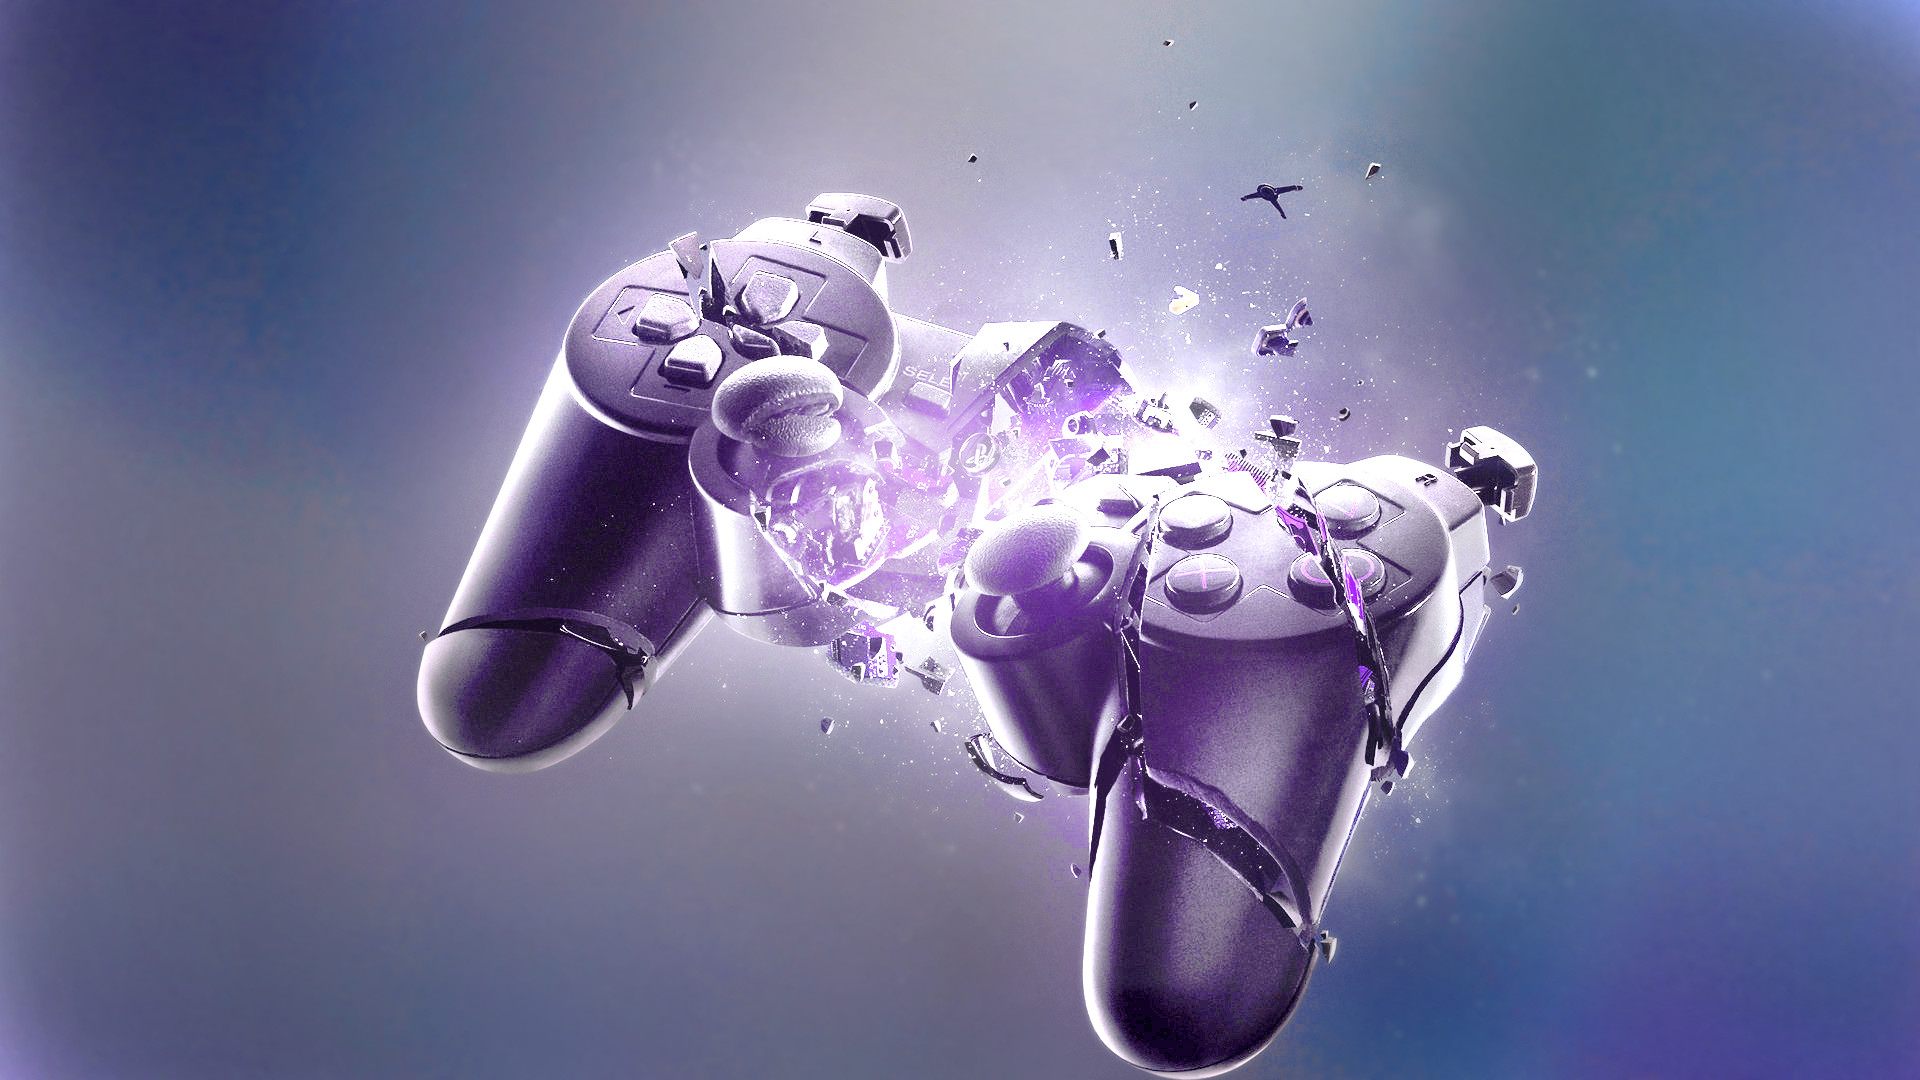 Gamer Thug Controller Hd Wallpapers: Playstation Controller Wallpaper (75+ Images